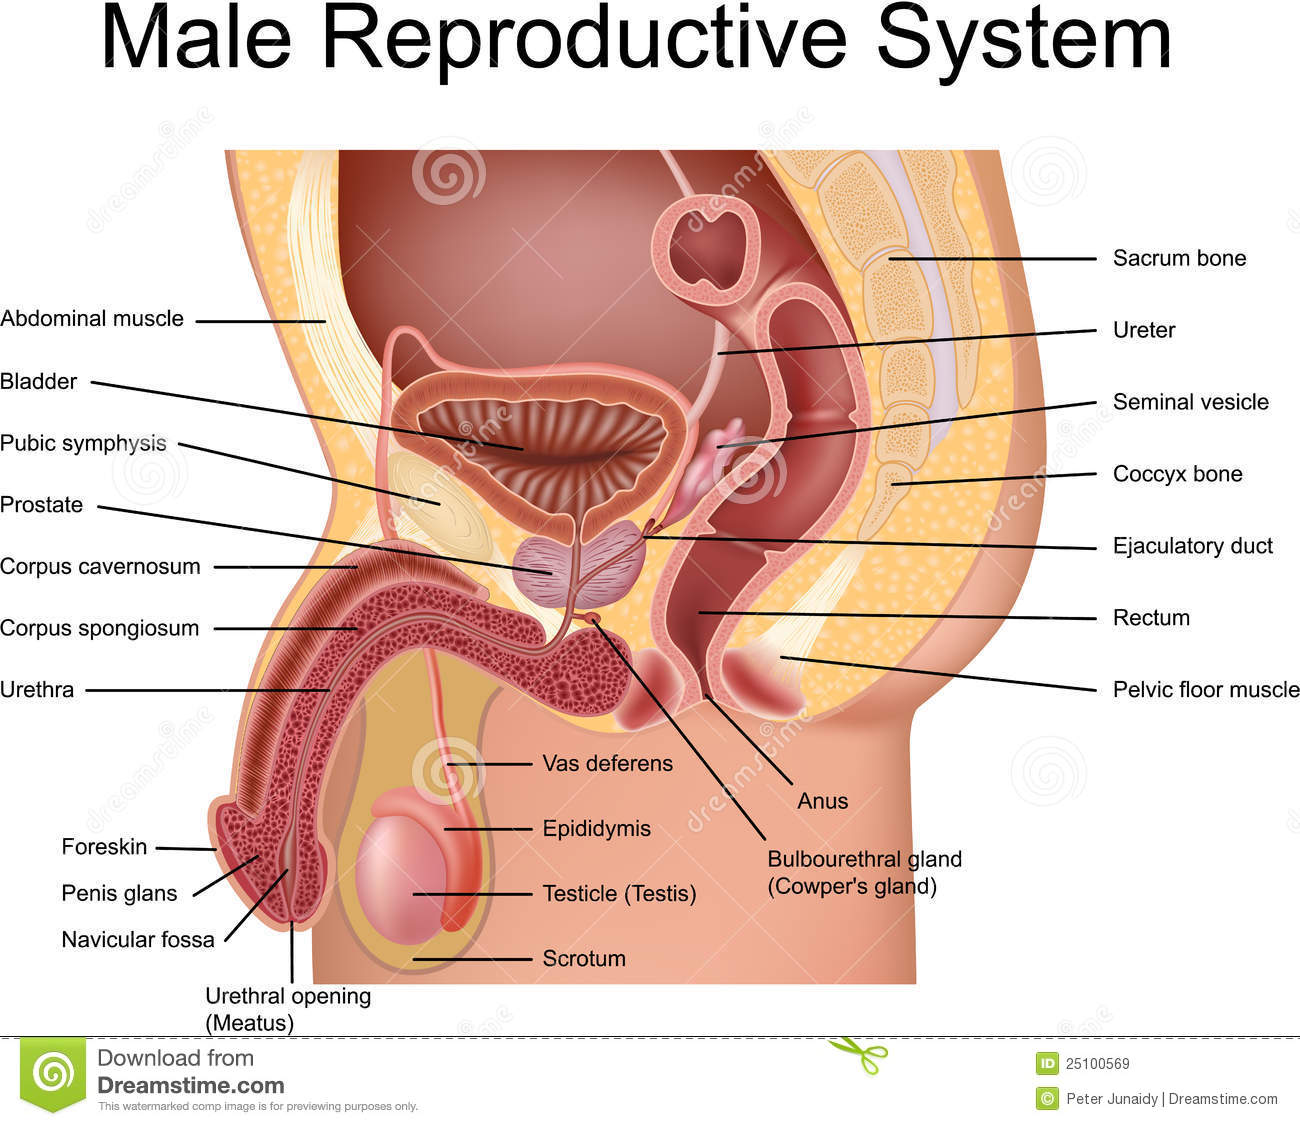 female and male reproductive systems - sonography folder, Human Body